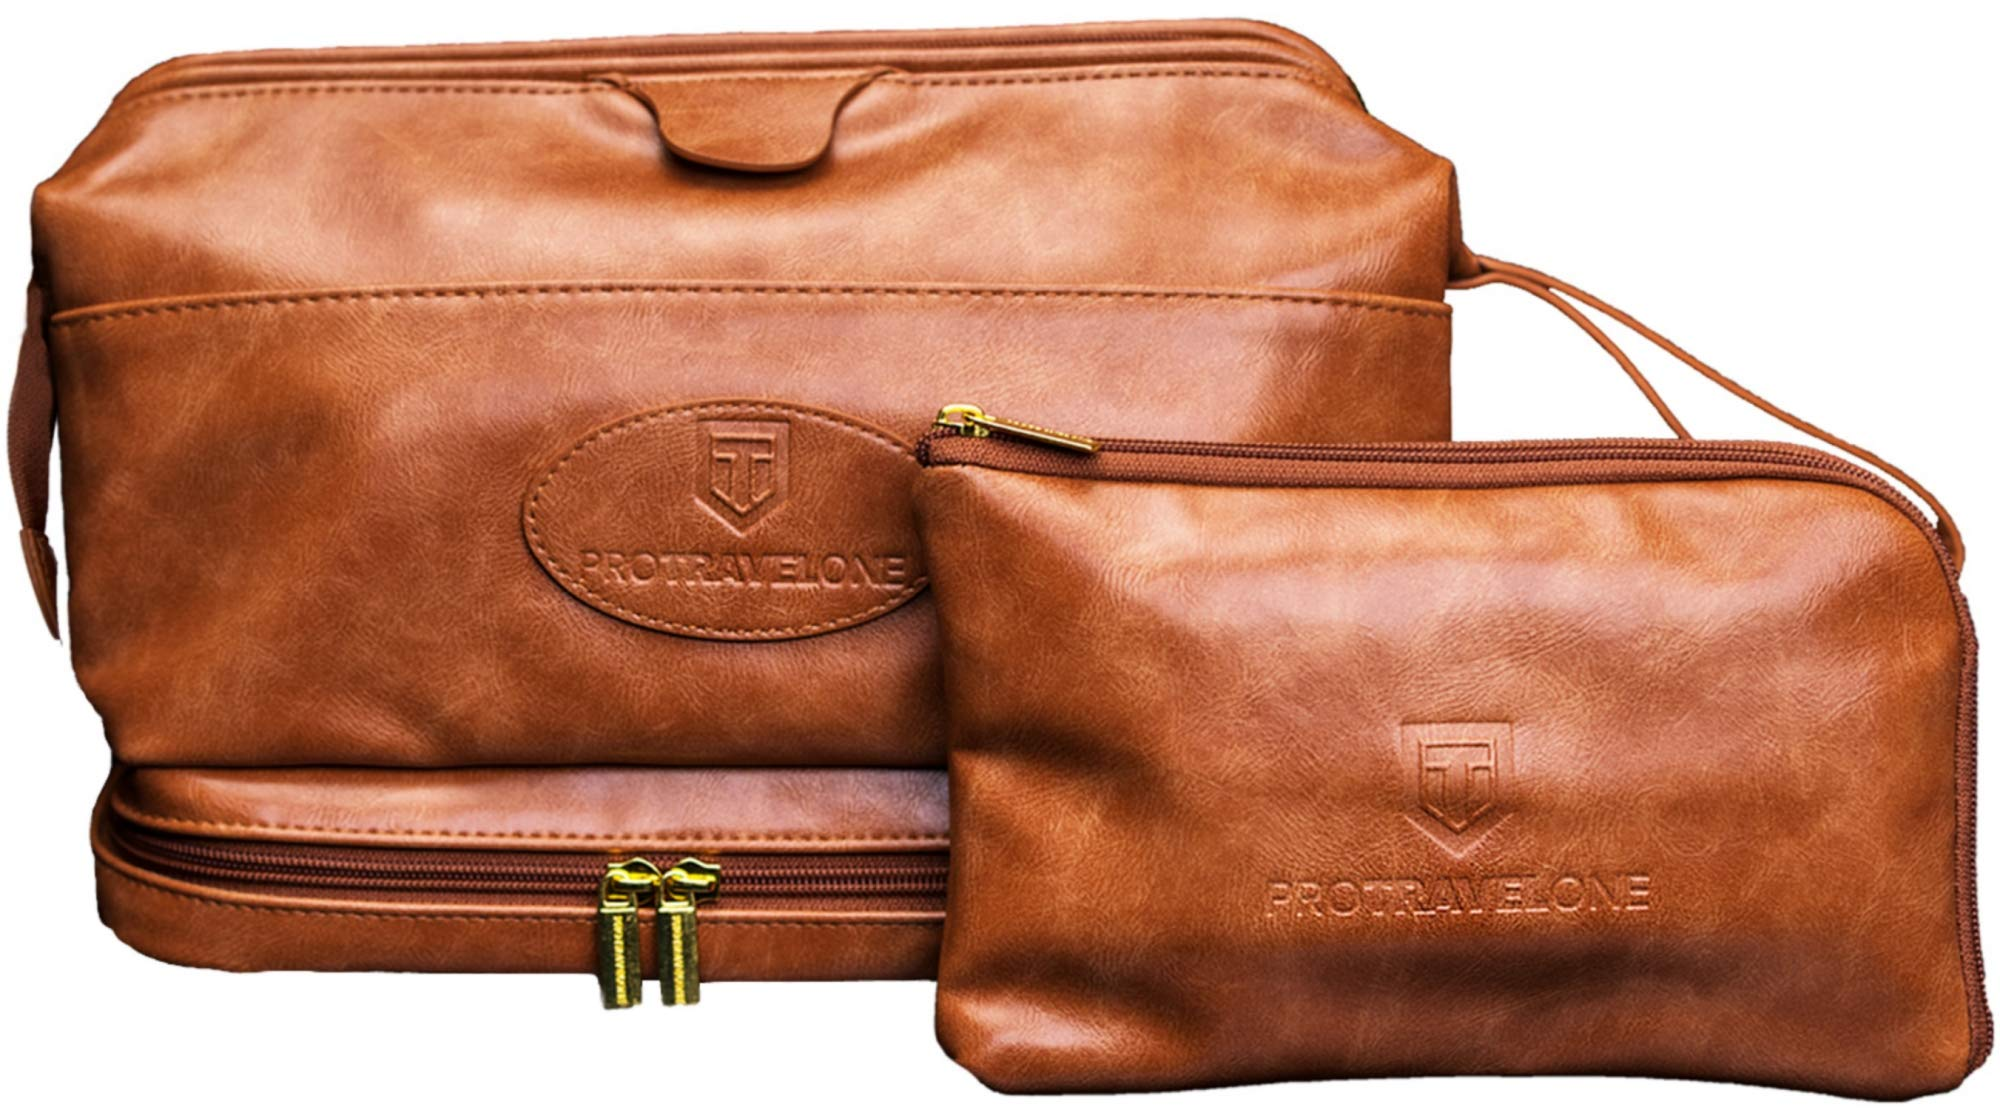 Protravelone Travel Toiletry Bag - Perfect Toiletry Bag for Men - Premium PU Leather Mens Toiletry Bag - Travel Kit for Men - Brown Toiletries Bag - Travel Bags For Toiletries - Travel Accessories by PROTRAVELONE